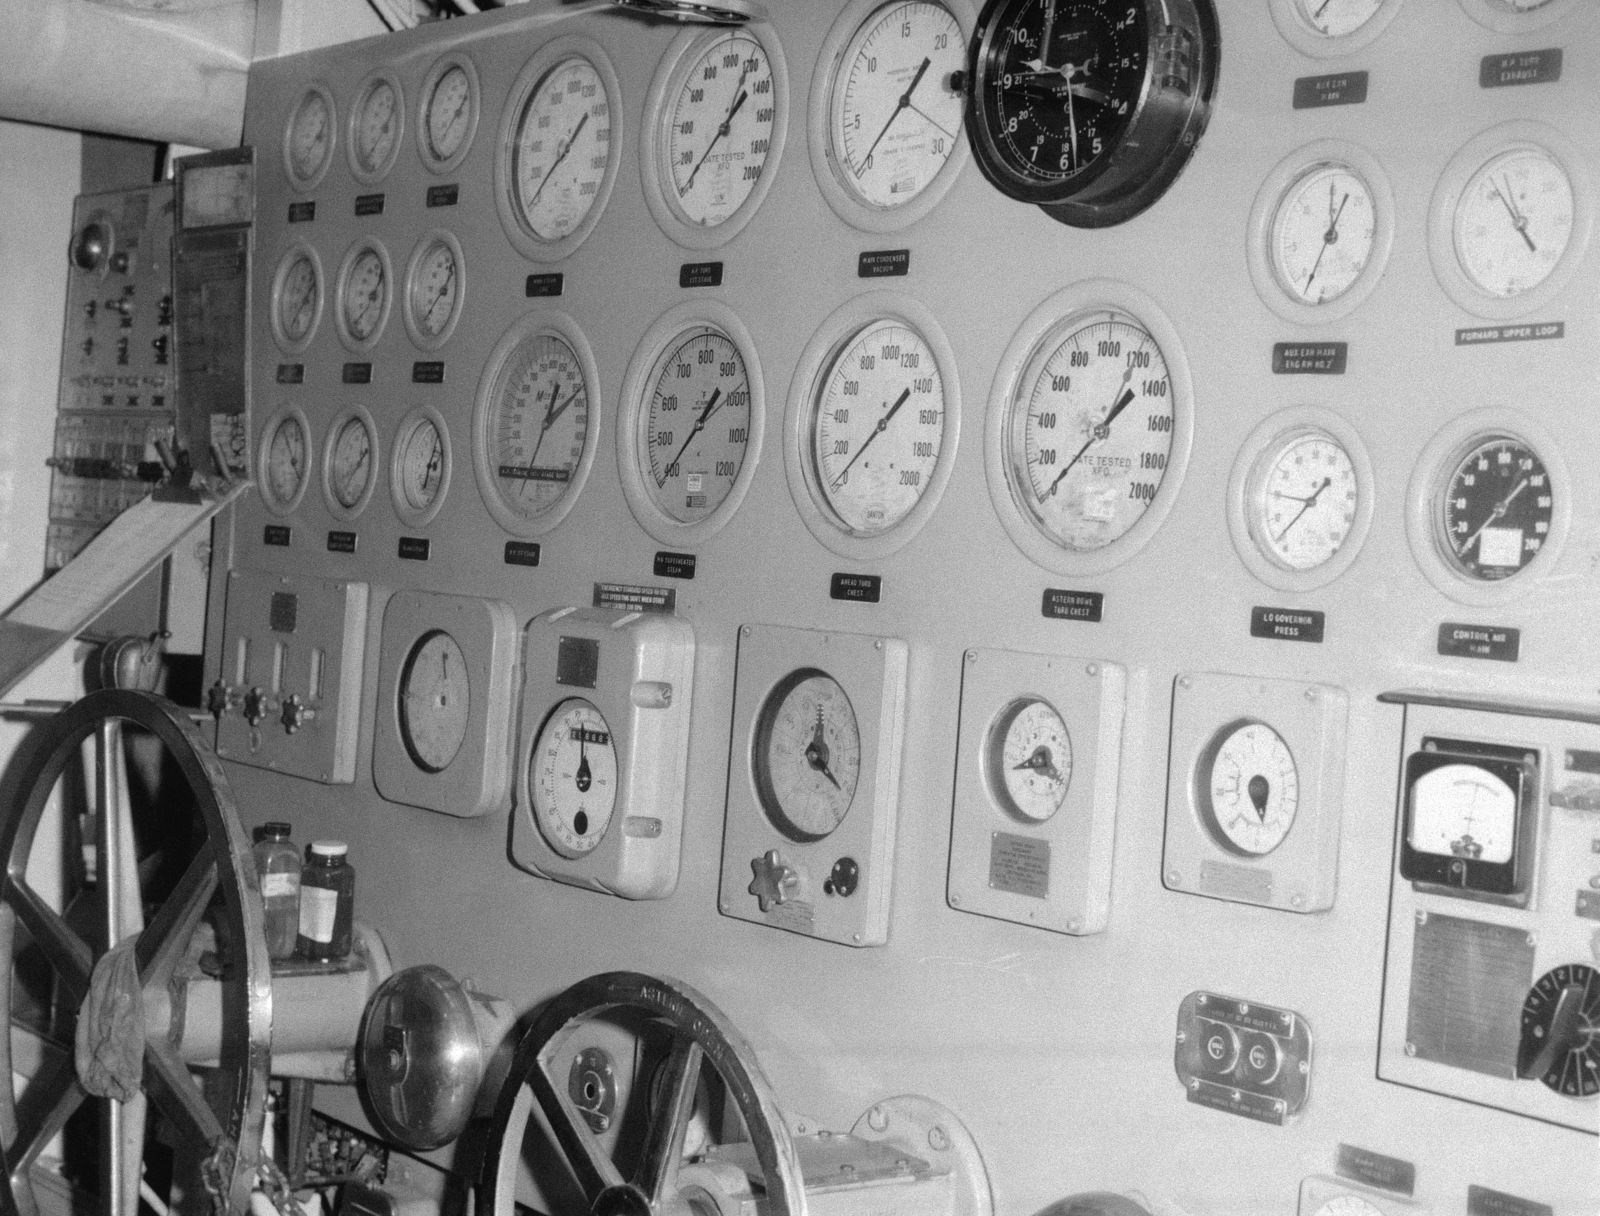 Ionian Sea.  A view of undamaged No. 1 engineroom control board aboard the guided missile cruiser USS BELKNAP (CG 26).  The BELKNAP was heavily damaged and caught fire when it collided with the aircraft carrier USS JOHN F. KENNEDY (CV 67) during night operations on November 22, 1975